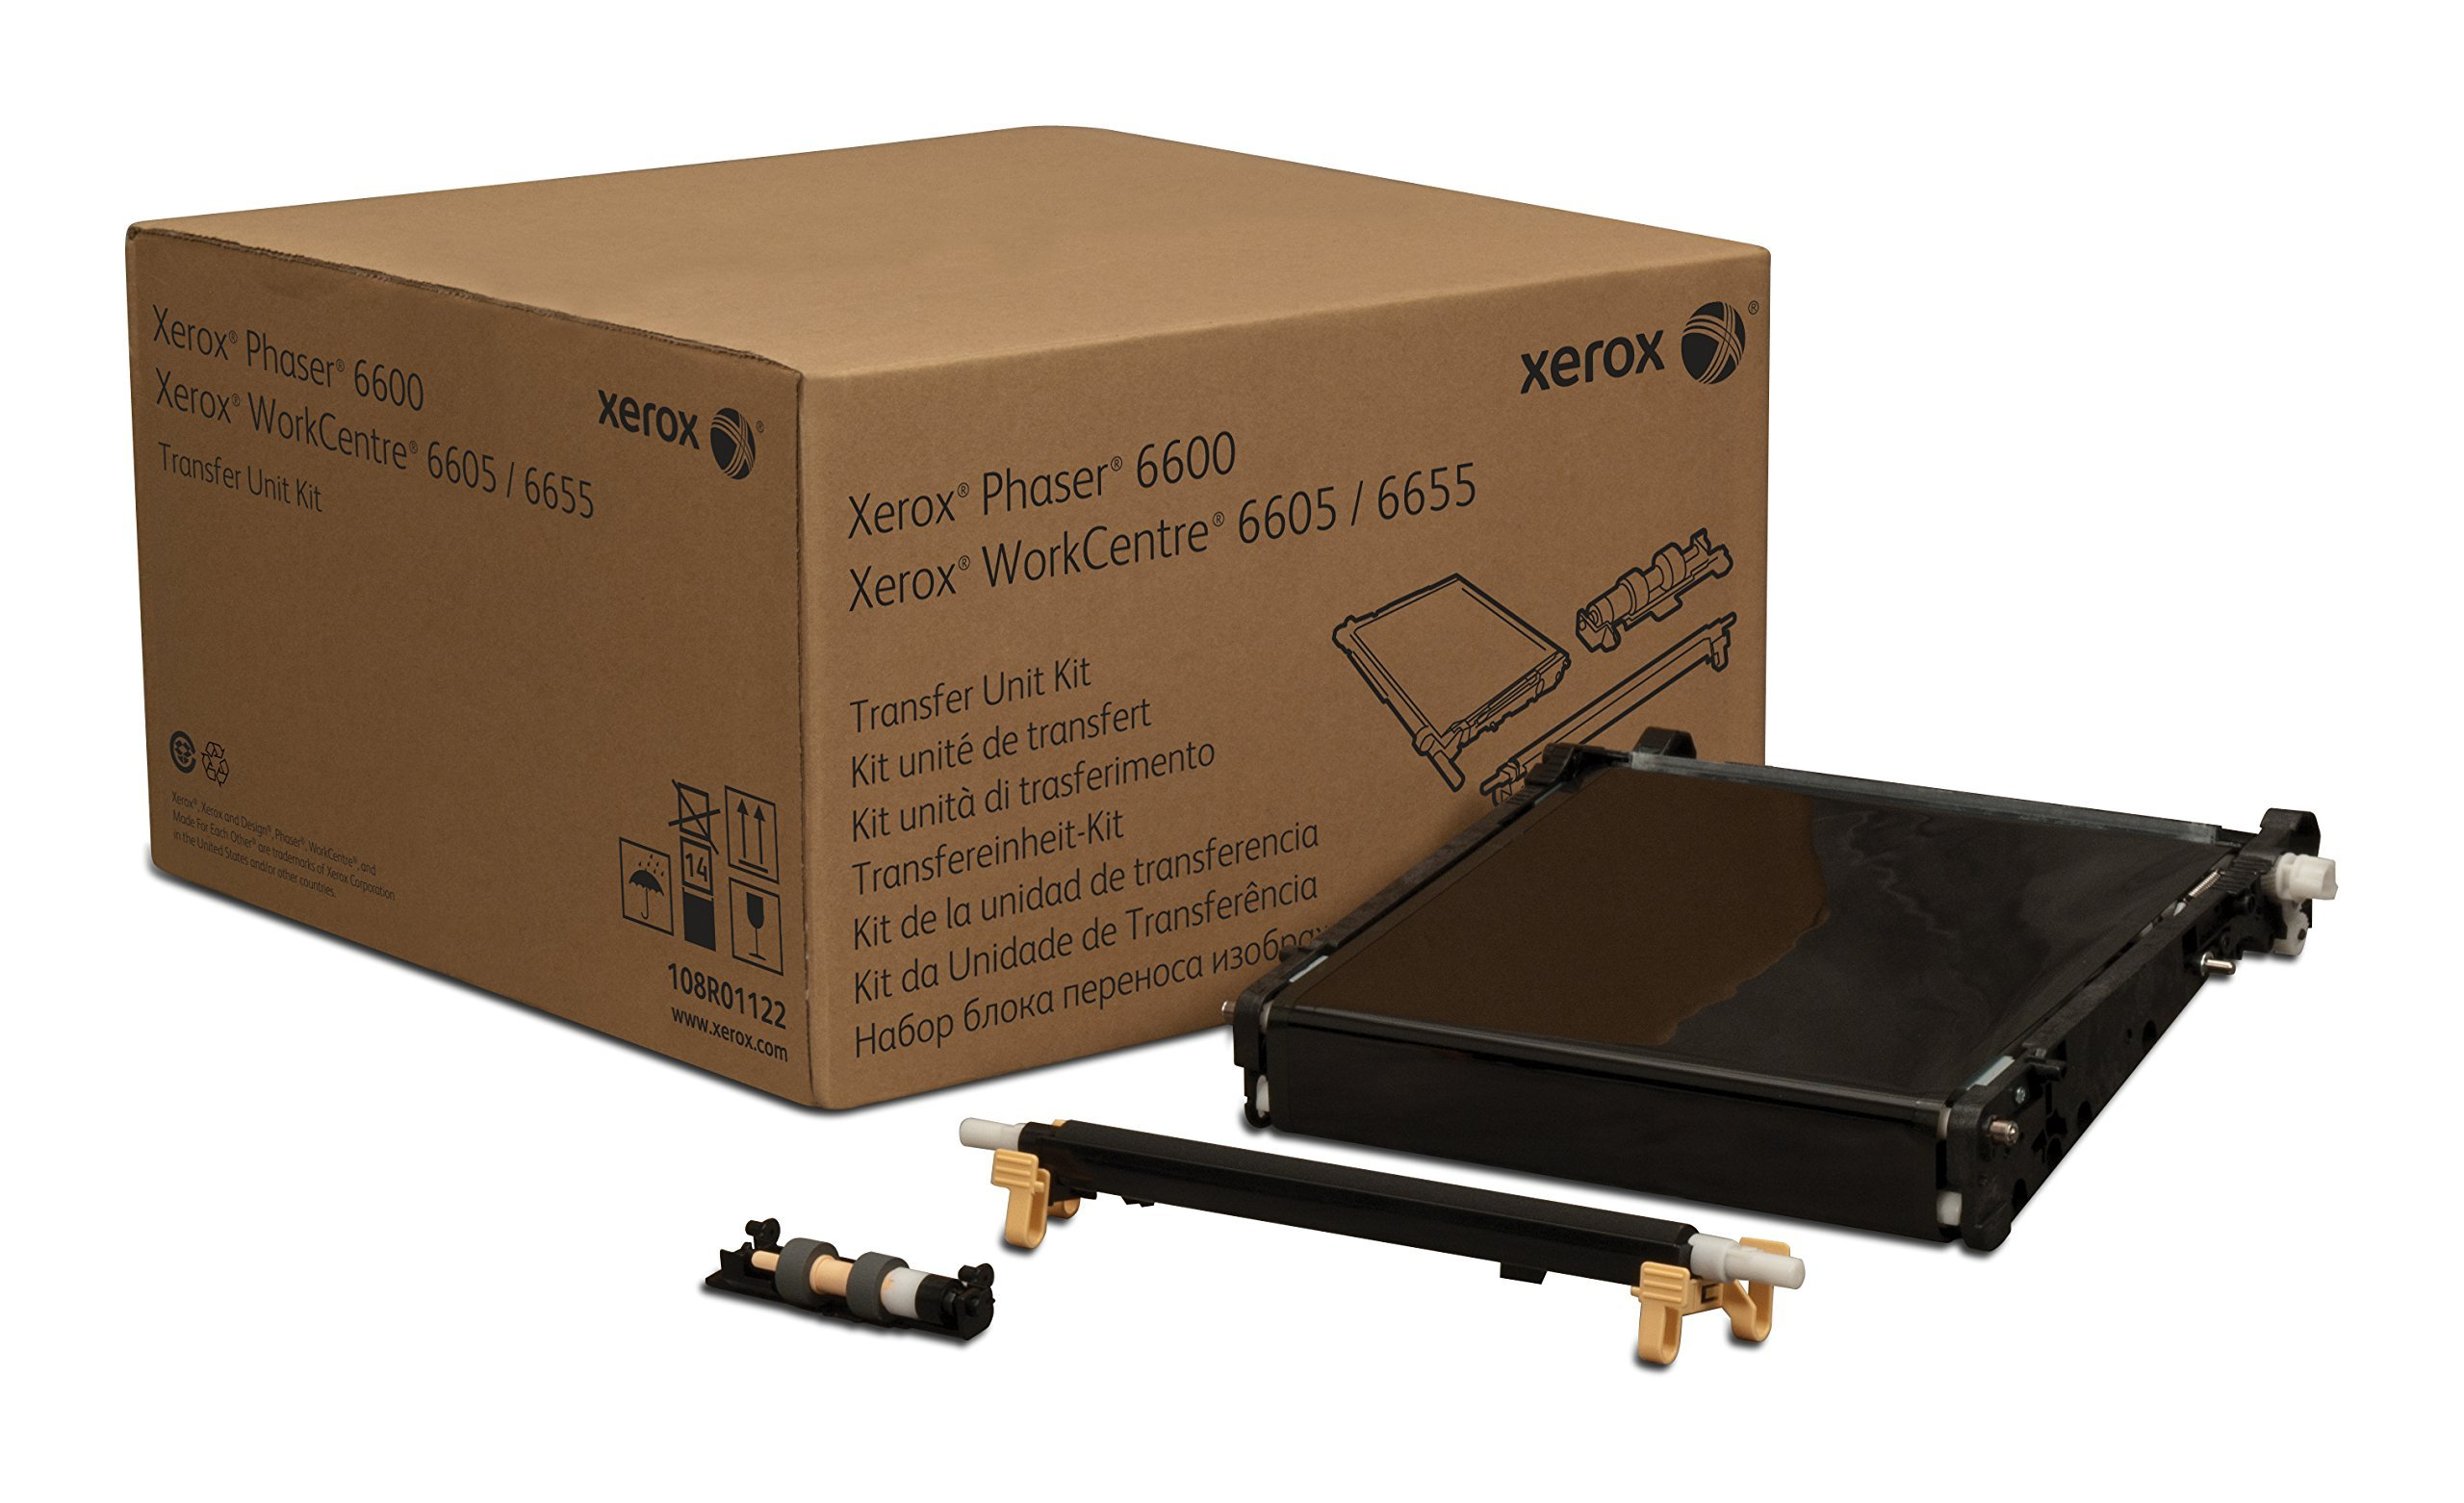 Genuine Xerox Transfer Unit Kit for the Xerox Phaser 6600 or WorkCentre 6605, 108R01122 (Renewed) by Xerox (Image #2)